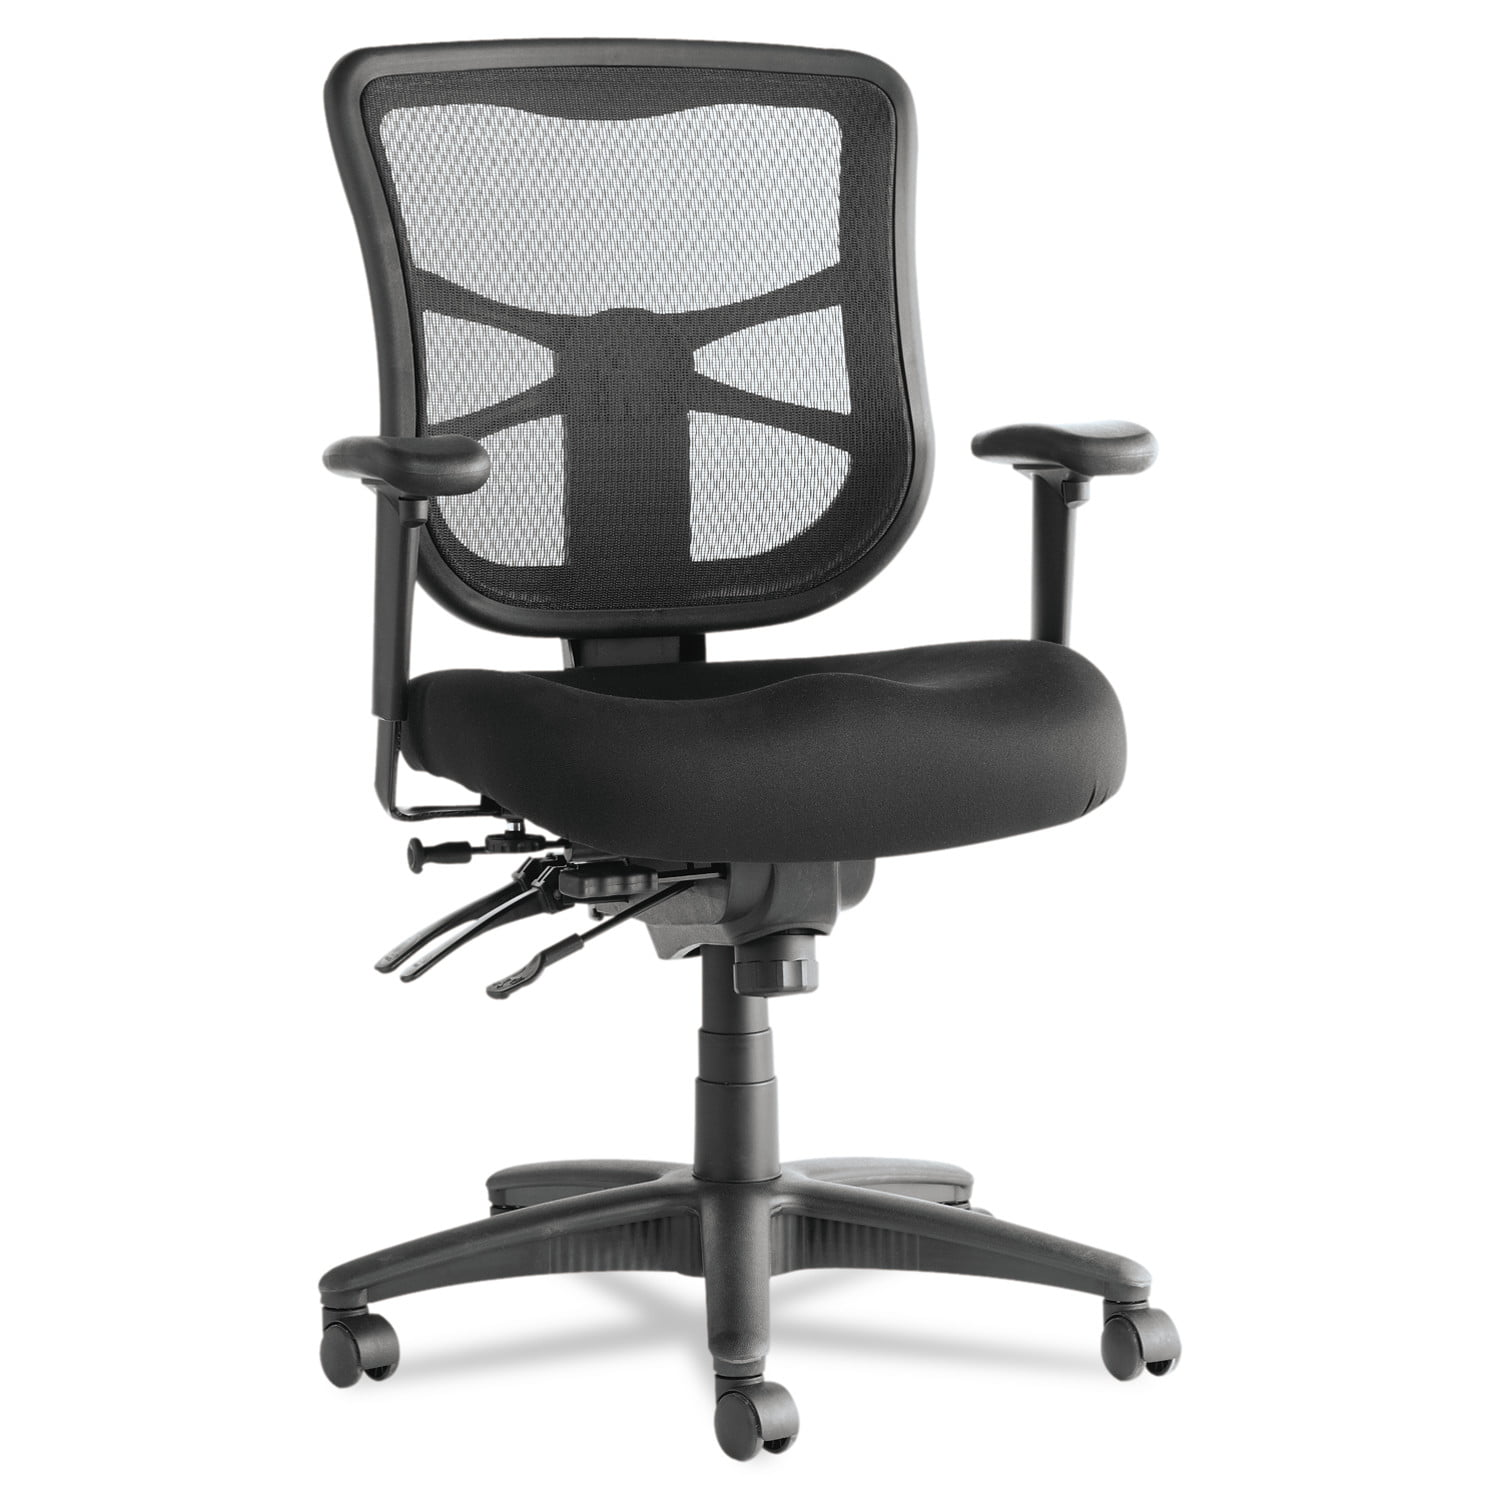 Alera Elusion Series Mesh Mid-Back Multifunction Chair, Black by ALERA